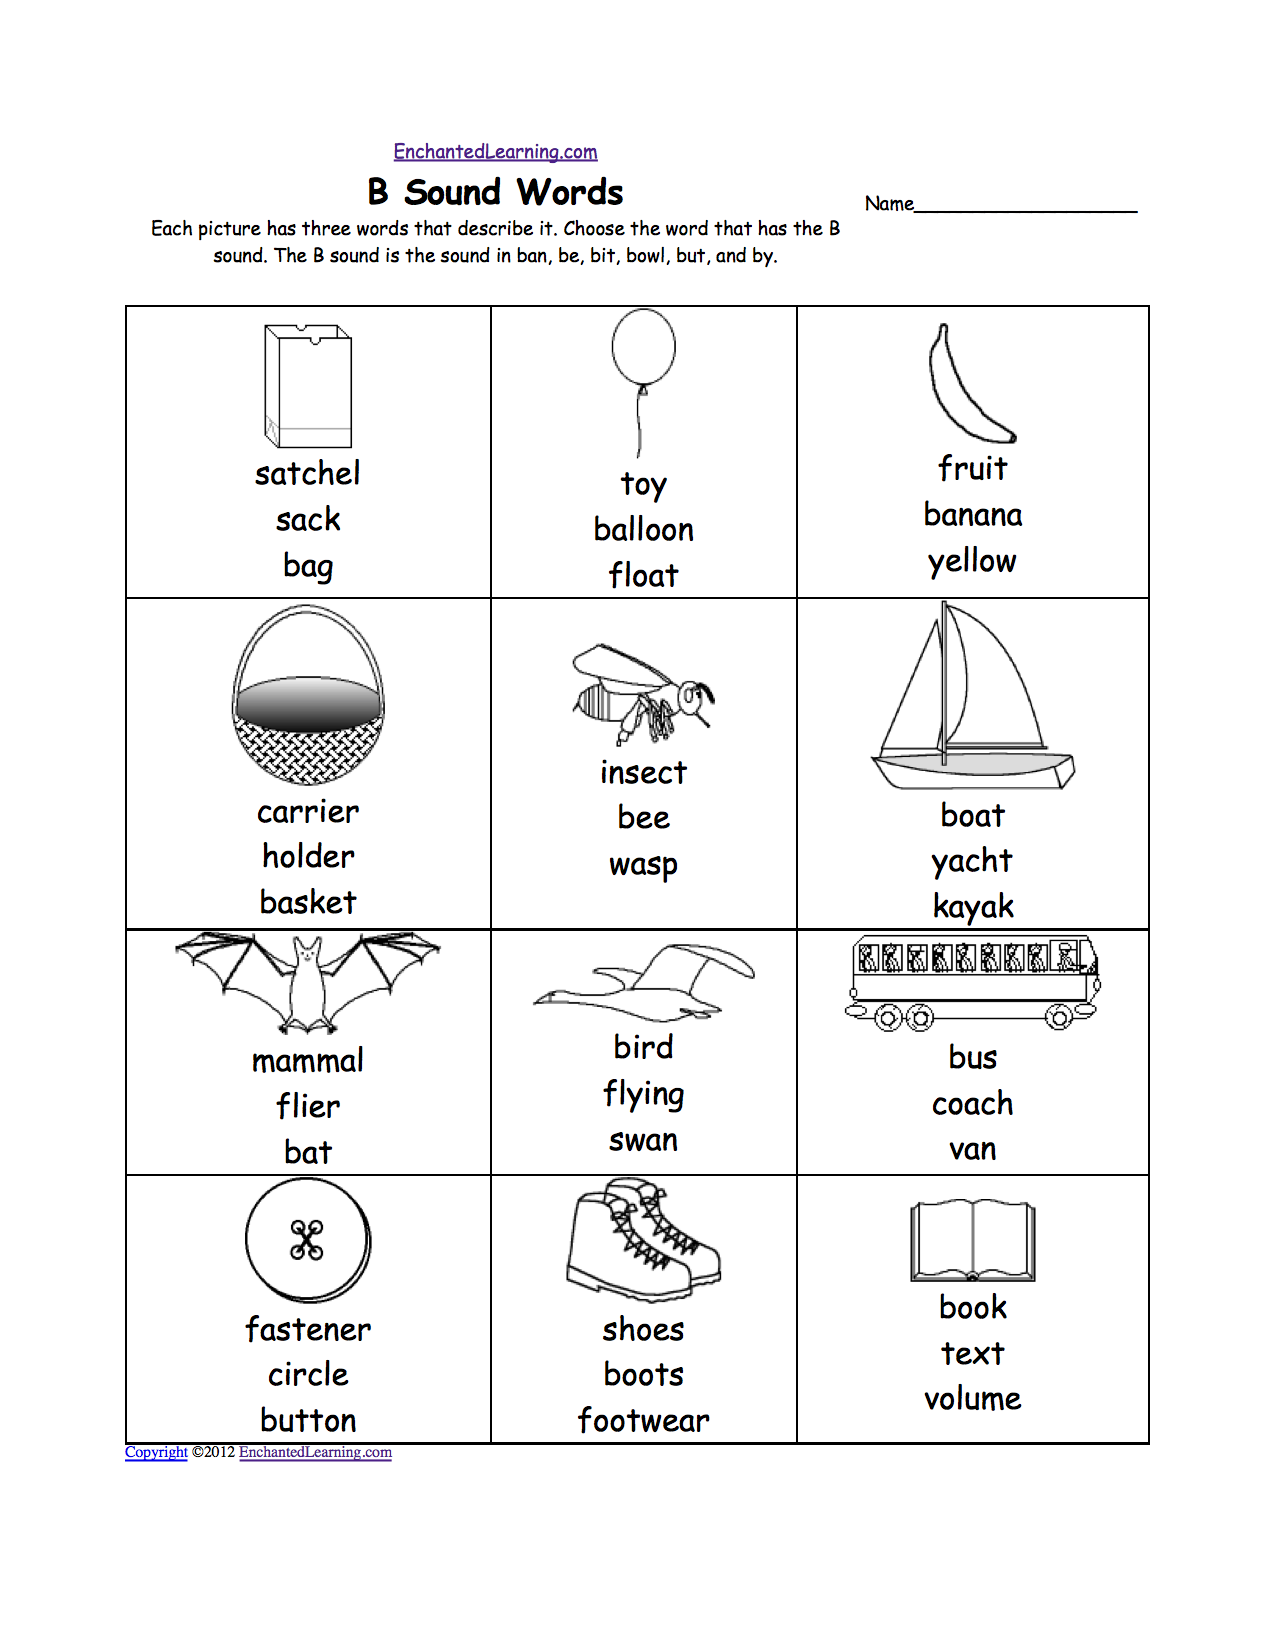 Aldiablosus  Unusual Phonics Worksheets Multiple Choice Worksheets To Print  With Gorgeous Quotbquot Sound Phonics Worksheet Multiple Choice Each Picture Has Three Words That Describe It Choose The Word That Has A Quotbquot Sound The Quotbquot Sound Is The Sound  With Breathtaking Kinetic Molecular Theory Worksheet Also Math Fraction Worksheets In Addition Easter Math Worksheets And Probability Theory Worksheet  As Well As Worksheet Mole Problems Additionally Law Of Conservation Of Mass Worksheet From Enchantedlearningcom With Aldiablosus  Gorgeous Phonics Worksheets Multiple Choice Worksheets To Print  With Breathtaking Quotbquot Sound Phonics Worksheet Multiple Choice Each Picture Has Three Words That Describe It Choose The Word That Has A Quotbquot Sound The Quotbquot Sound Is The Sound  And Unusual Kinetic Molecular Theory Worksheet Also Math Fraction Worksheets In Addition Easter Math Worksheets From Enchantedlearningcom